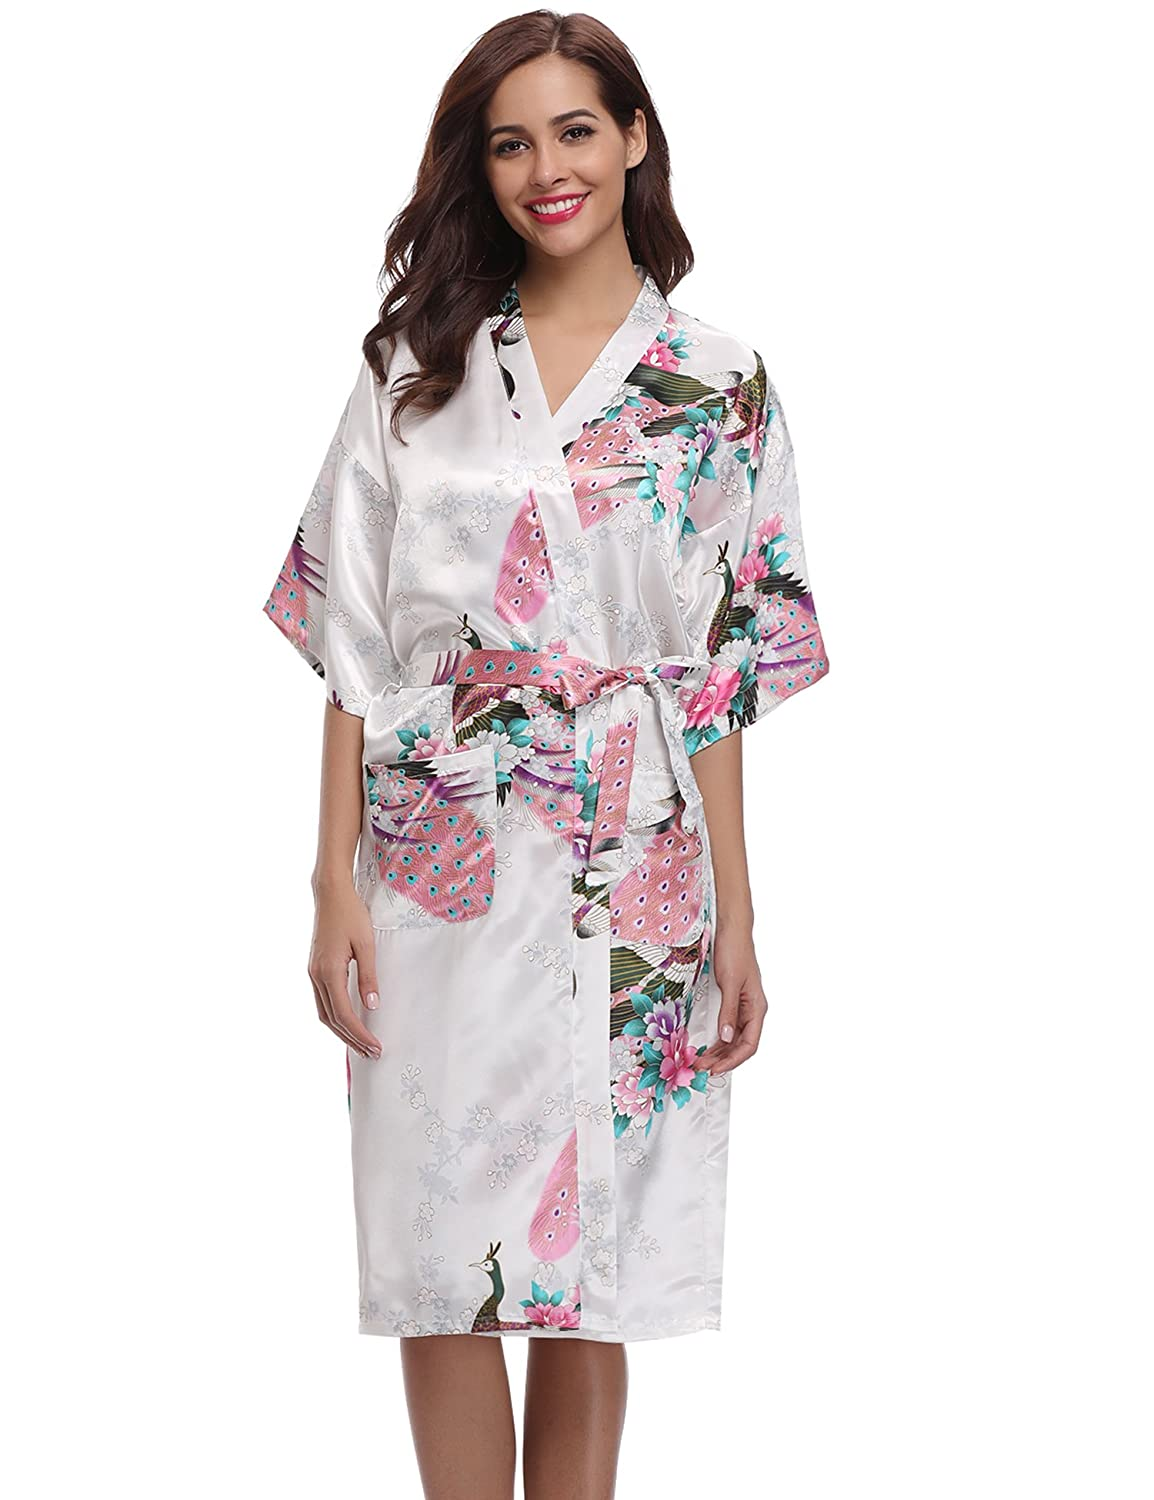 Aibrou Women's Kimono Robe Long Dressing Gown Long Peacock Nightdress Classic Satin Wedding Kimono Nightwear AM16062403